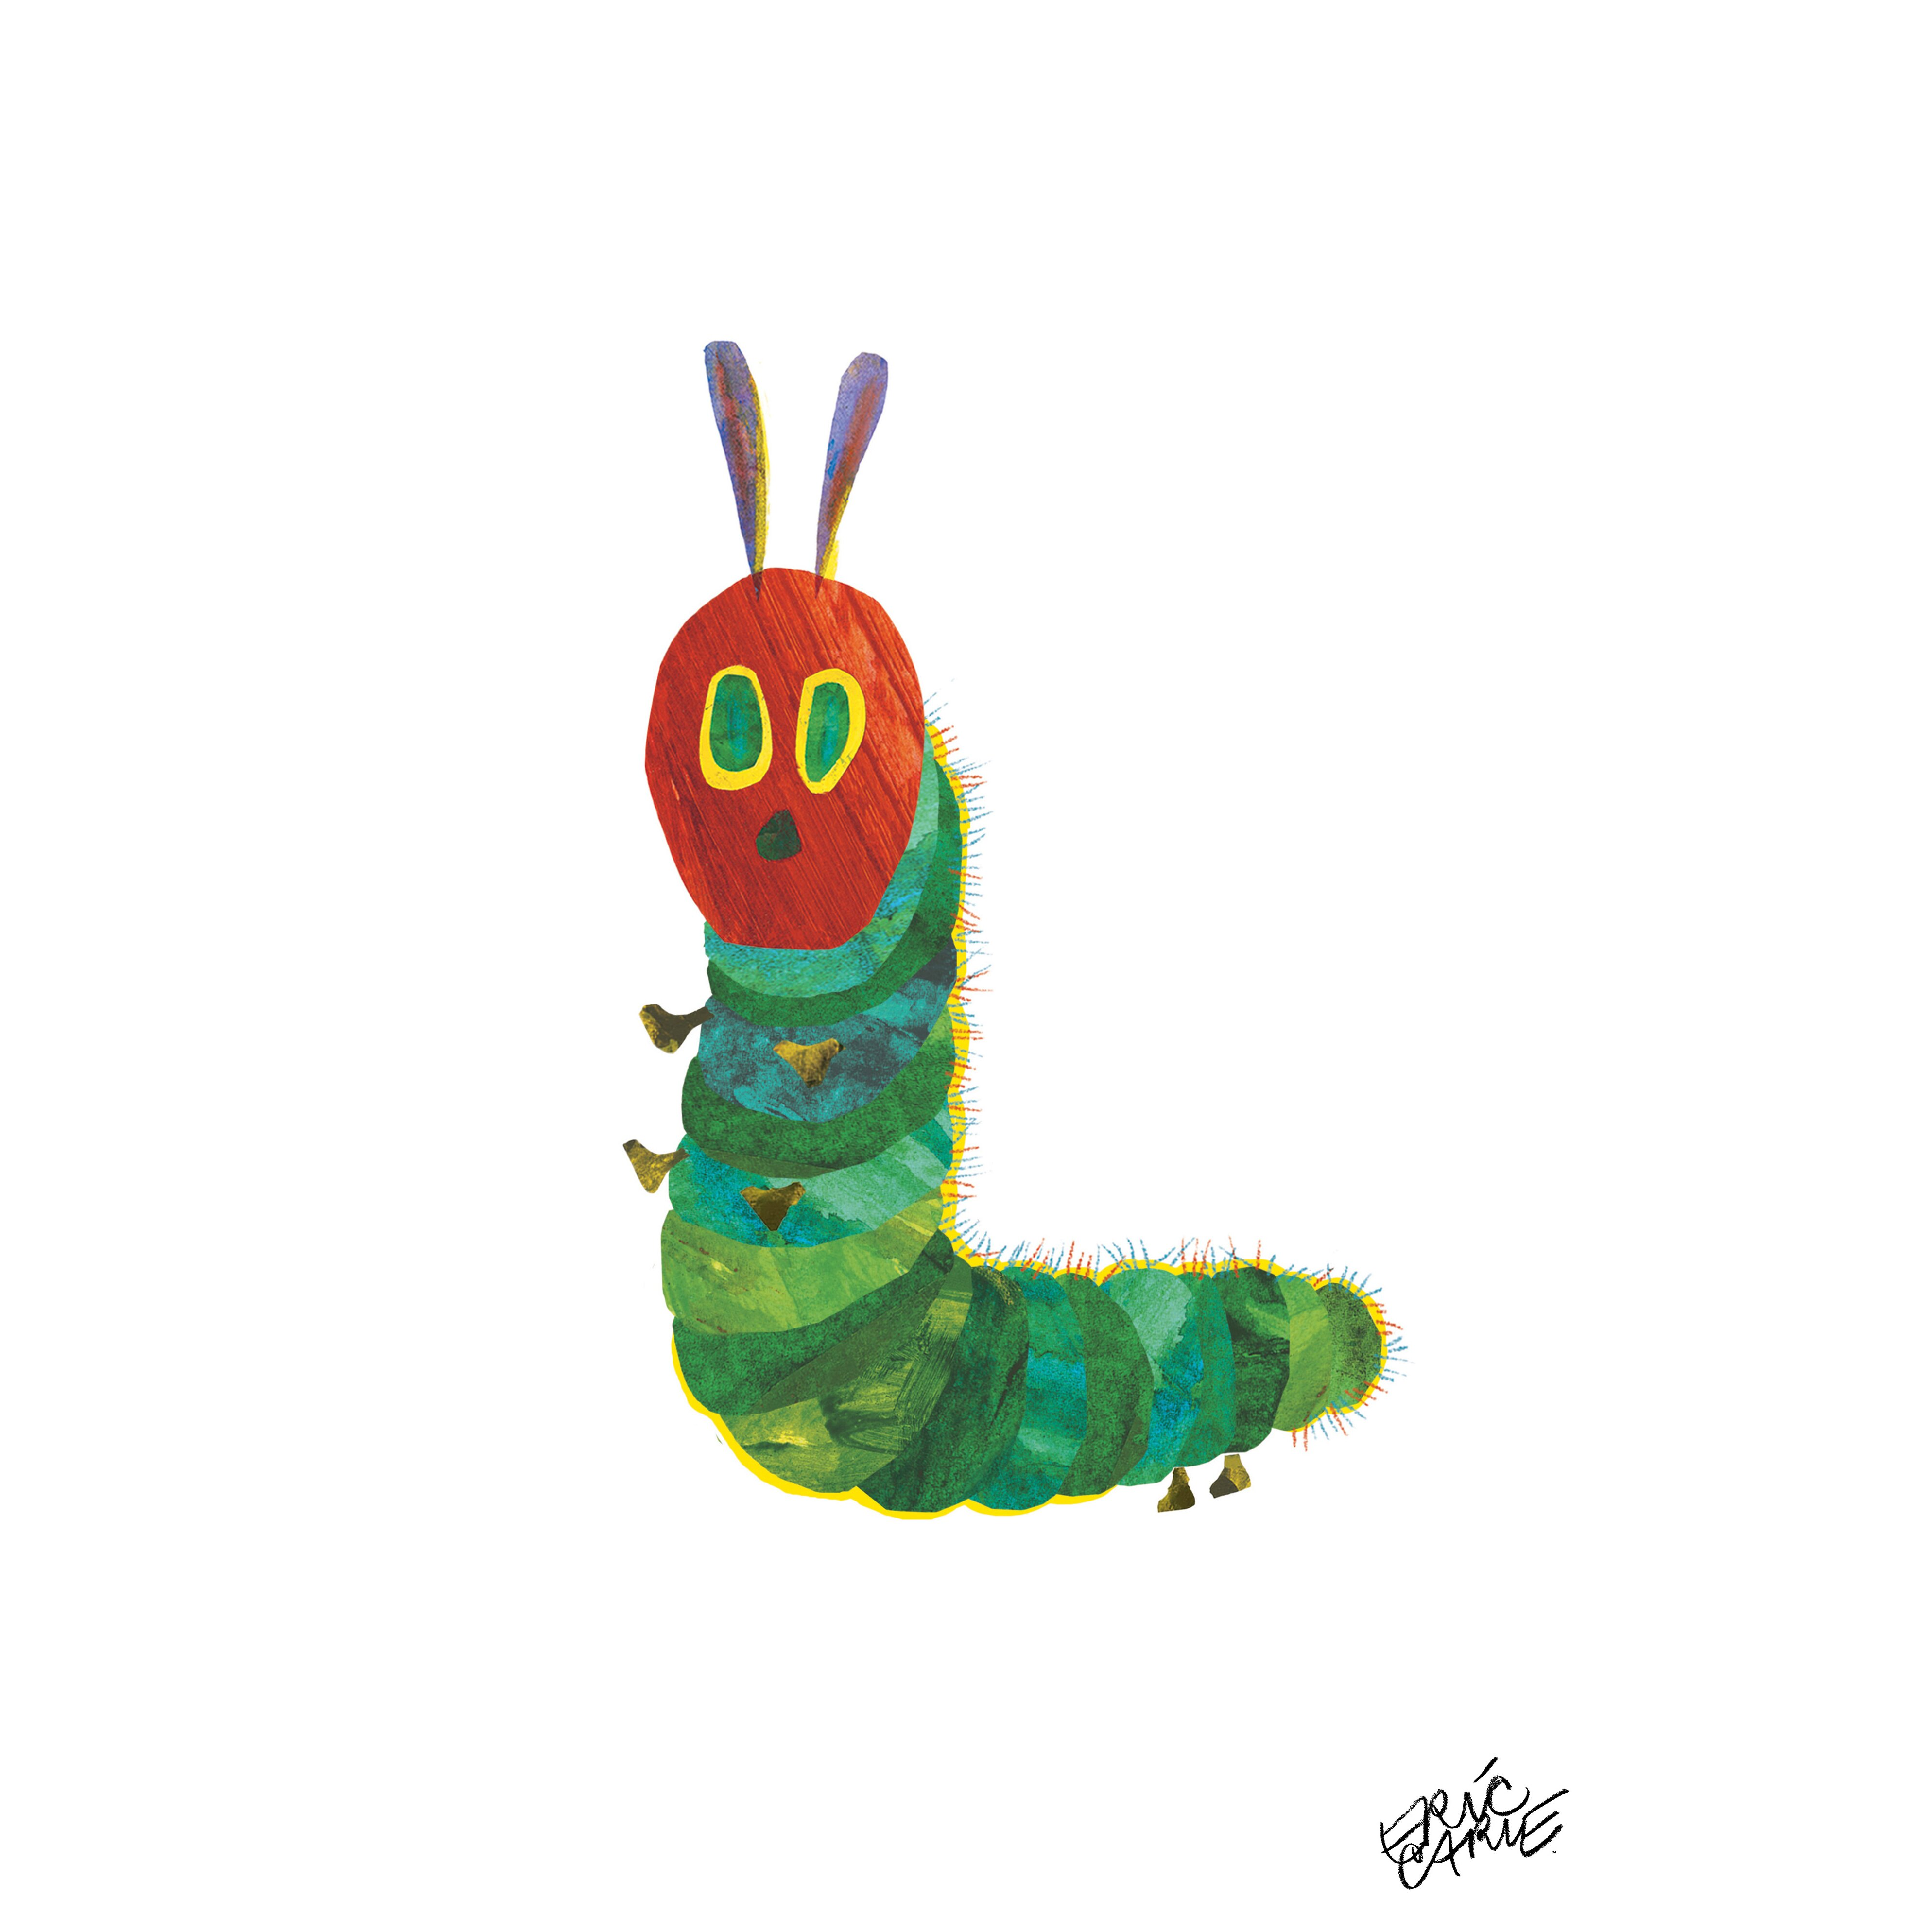 The Very Hungry Caterpillar Character Caterpillar 3 By